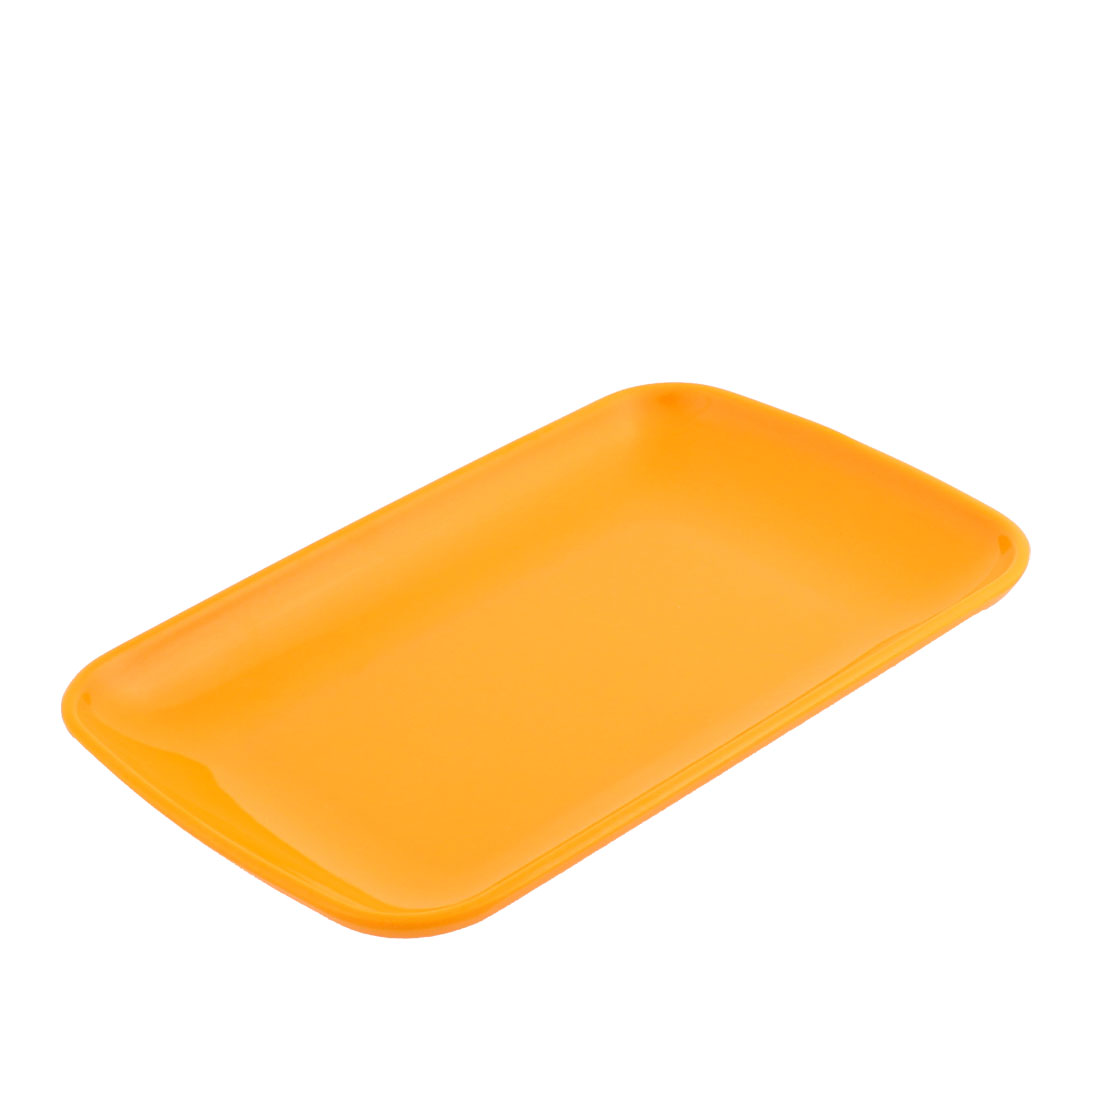 Plastic Rectangle Shape Dinner Dessert Vermicelli Plate Dish Yellow